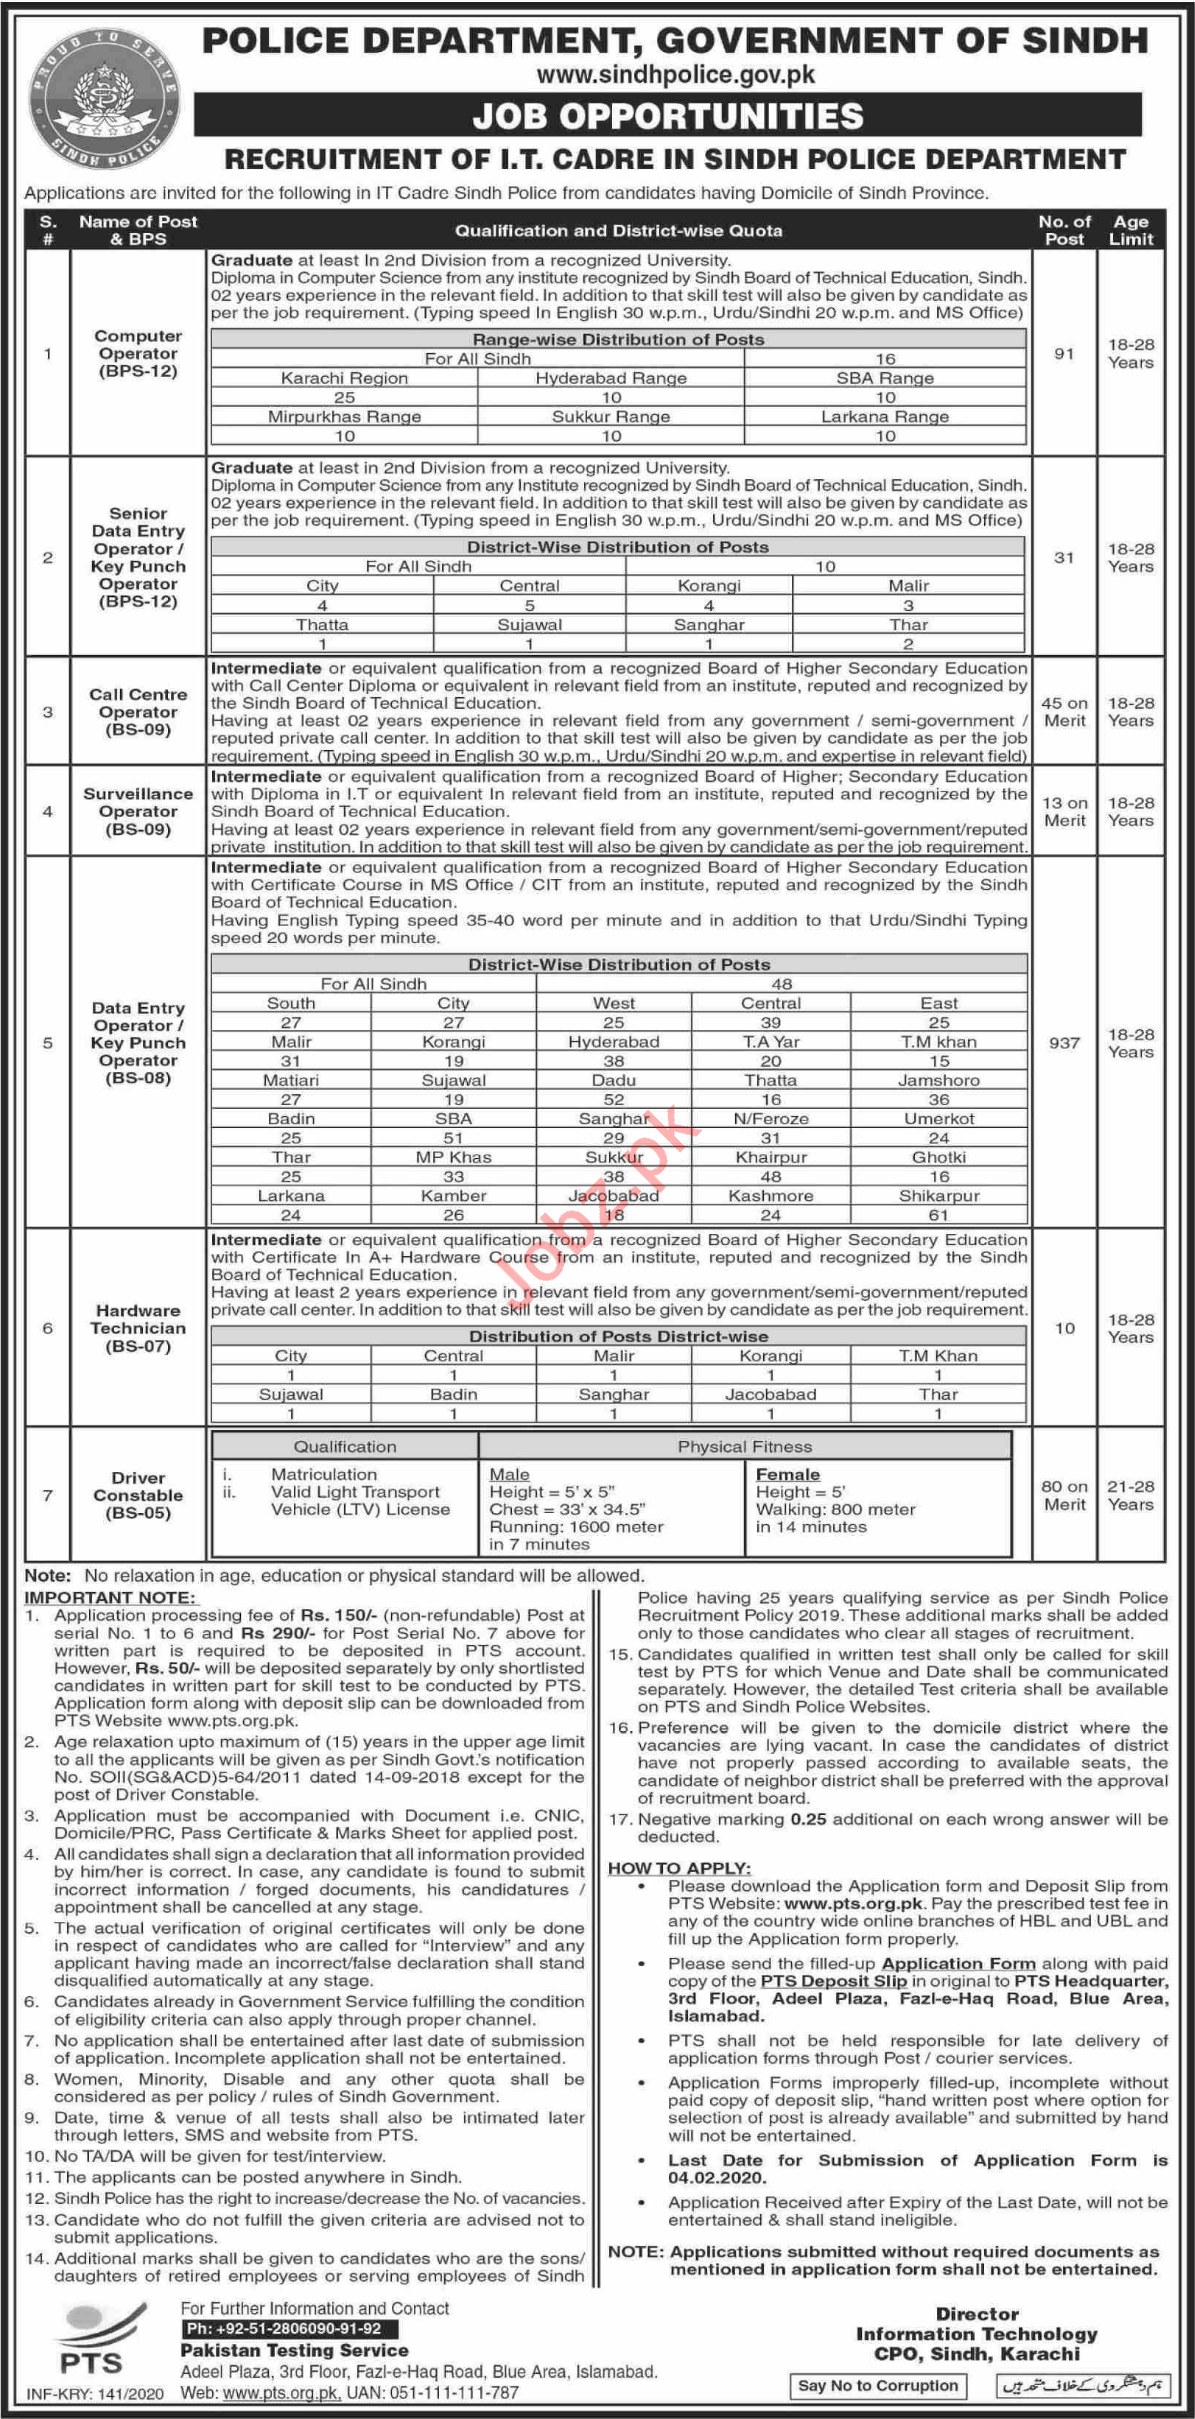 Sindh Police Department IT Cadre Jobs 2020 via PTS